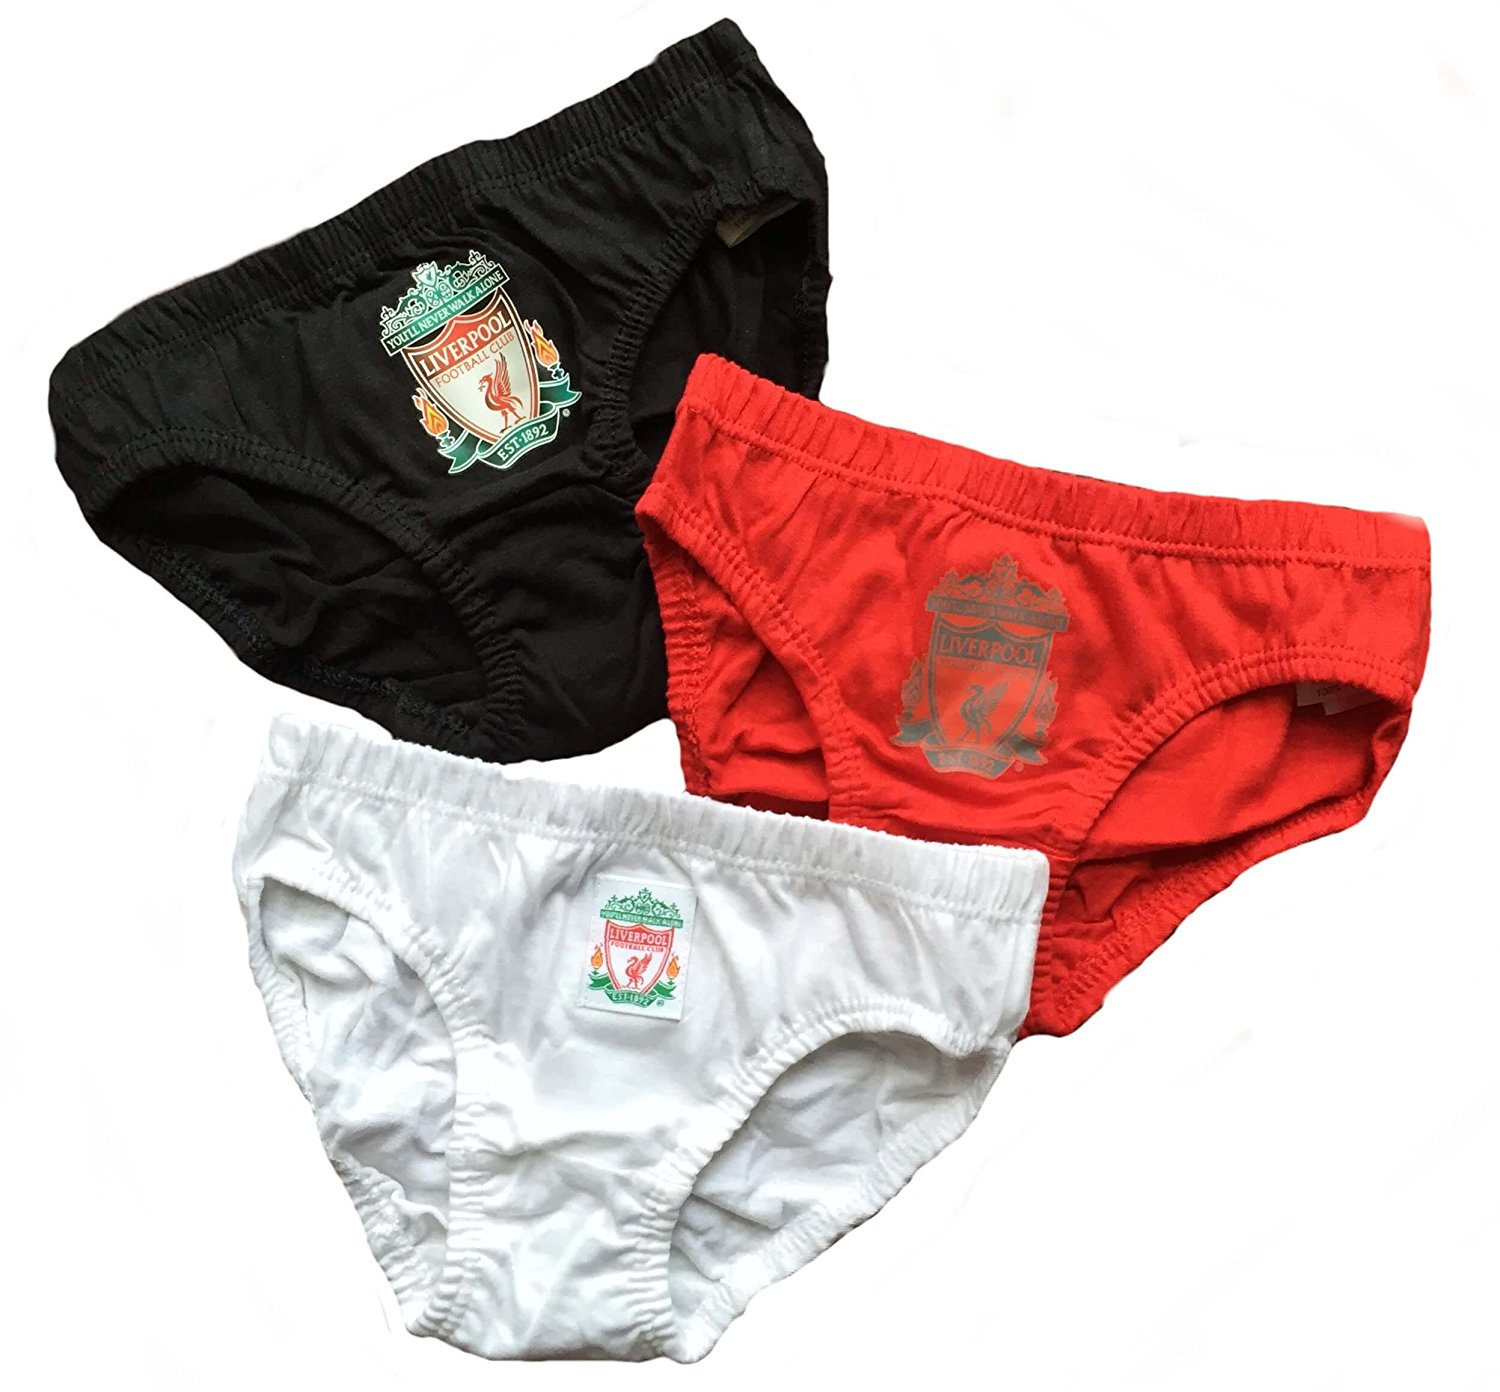 Liverpool Kids (Boys Youth) Briefs - 3 Pack